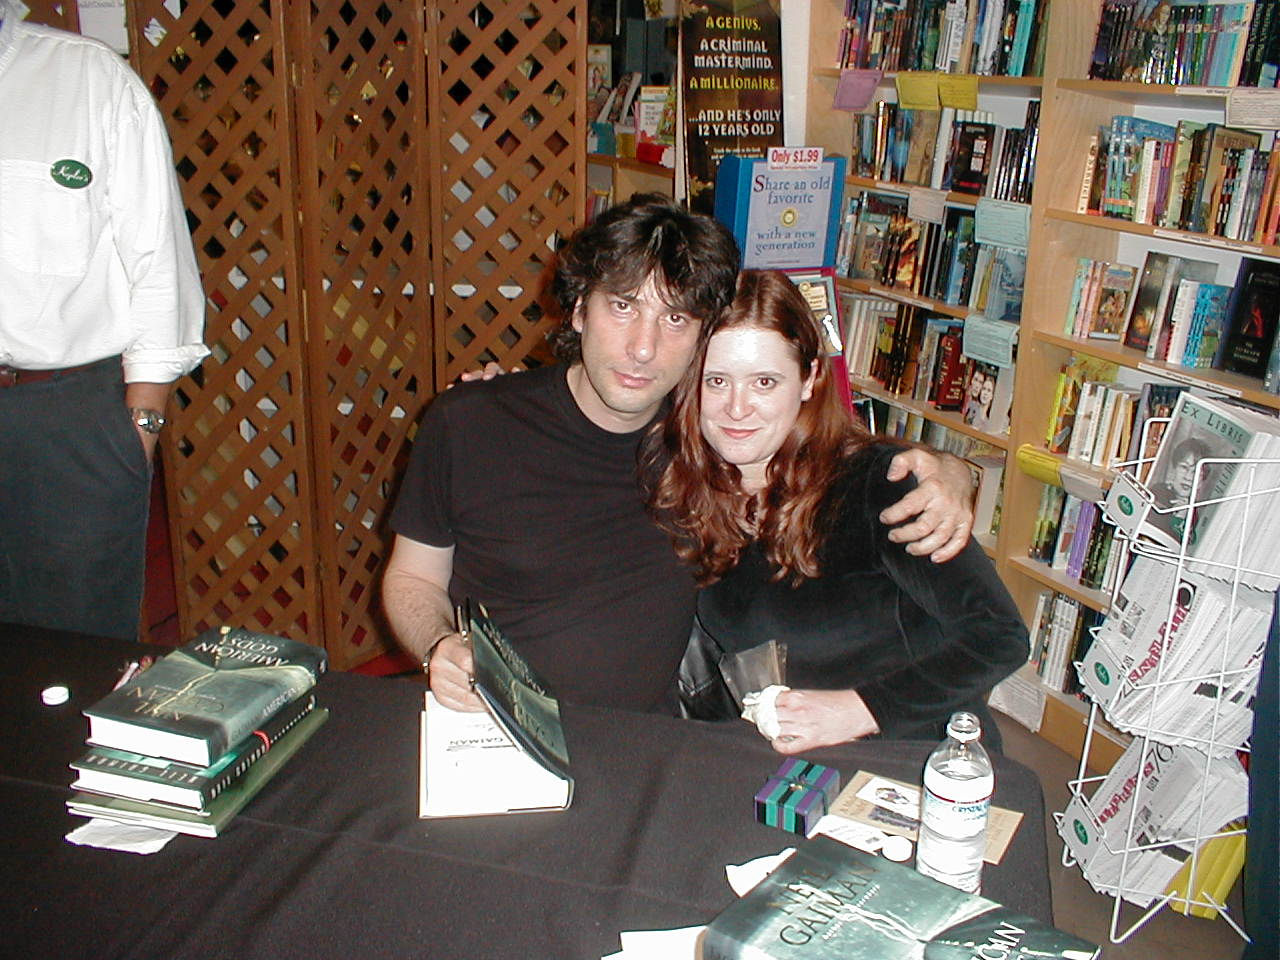 Neil Gaiman touched me!  :)